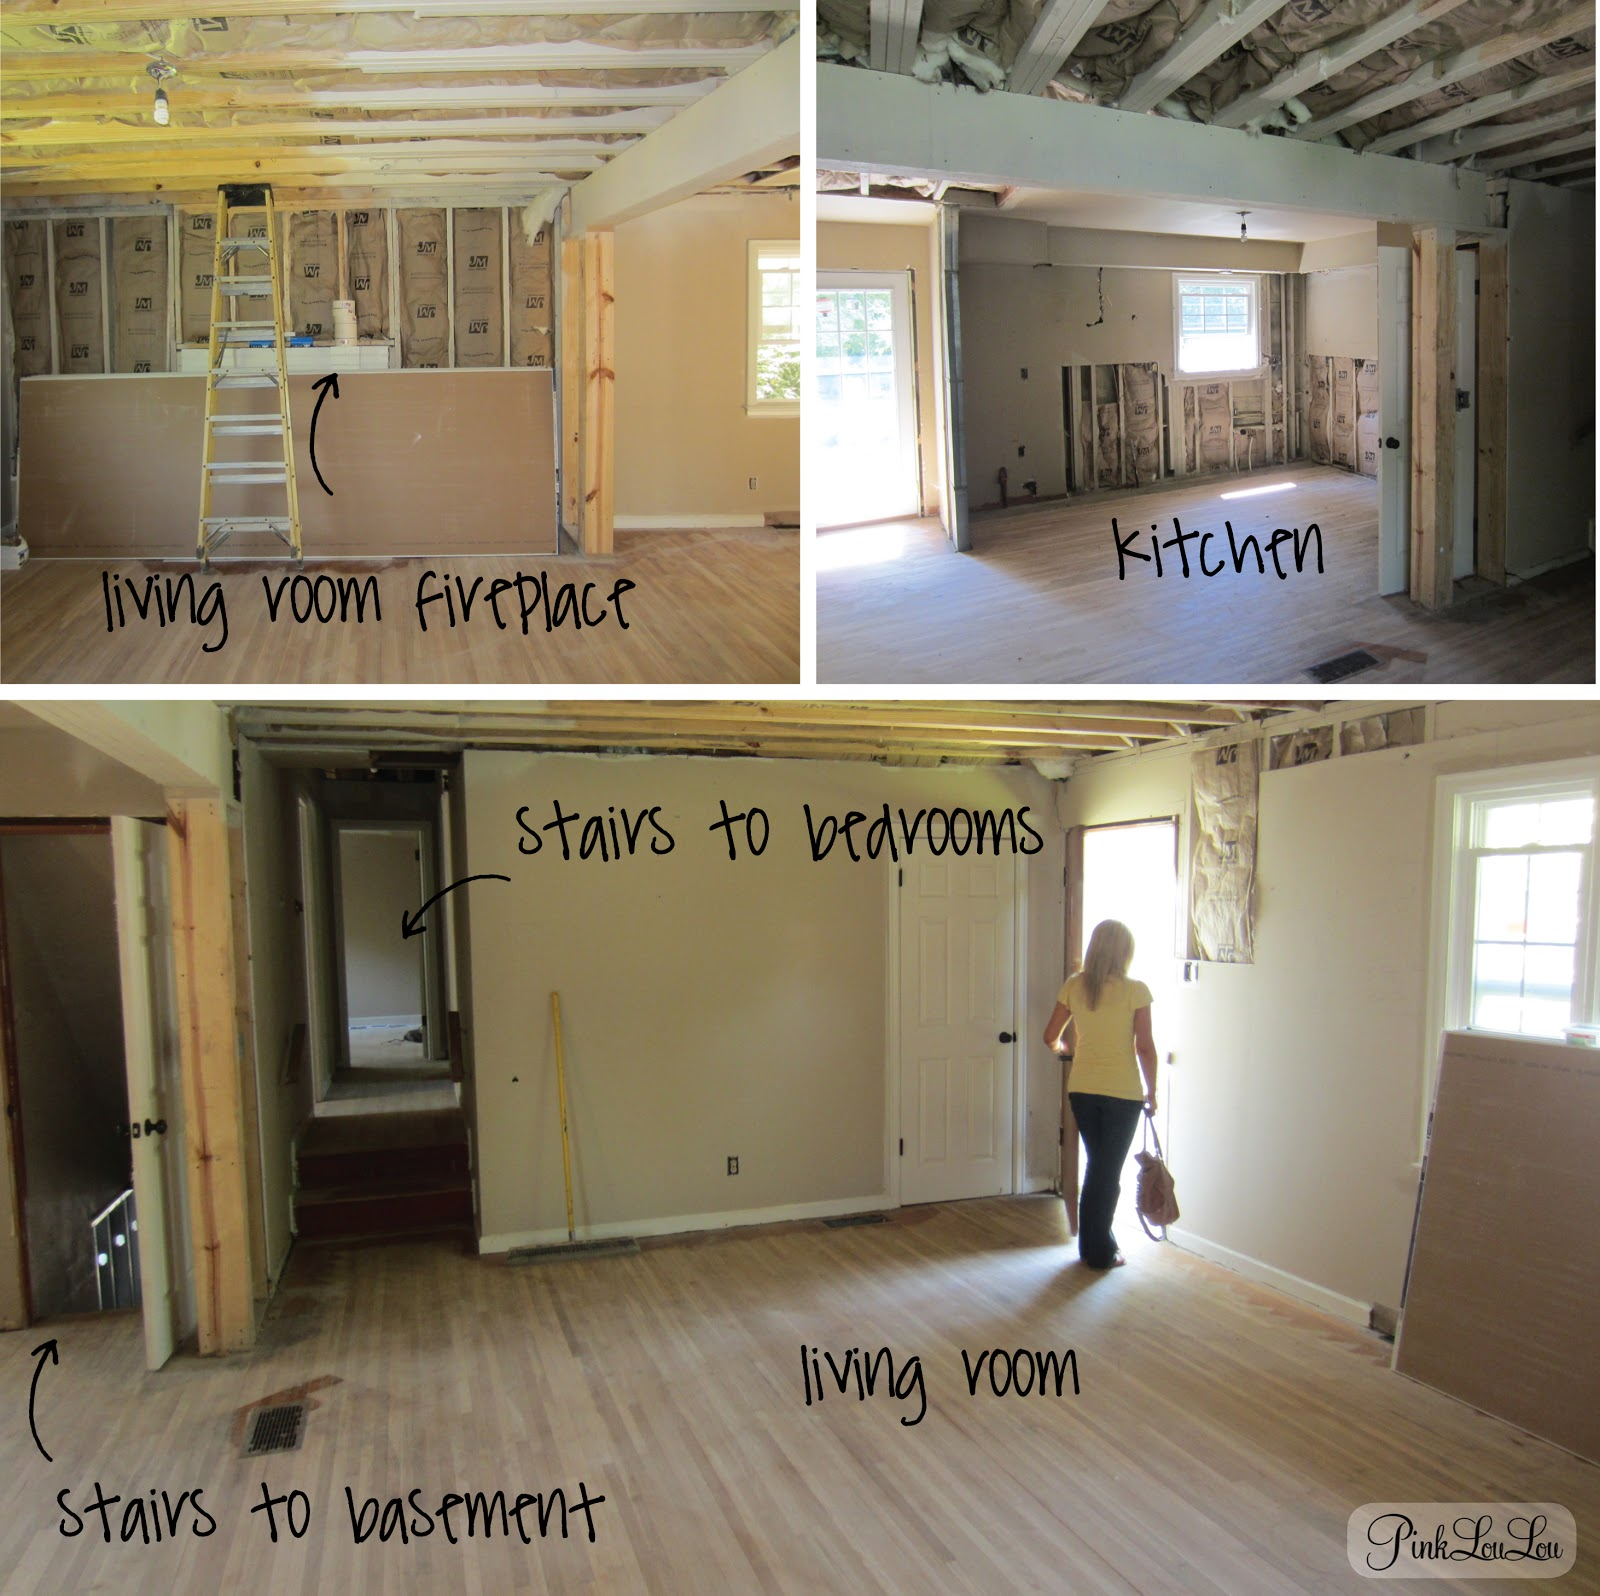 Internal Knock Through Between Kitchen And Dining Room: I Still Can't Believe They Let Me Buy A House ;